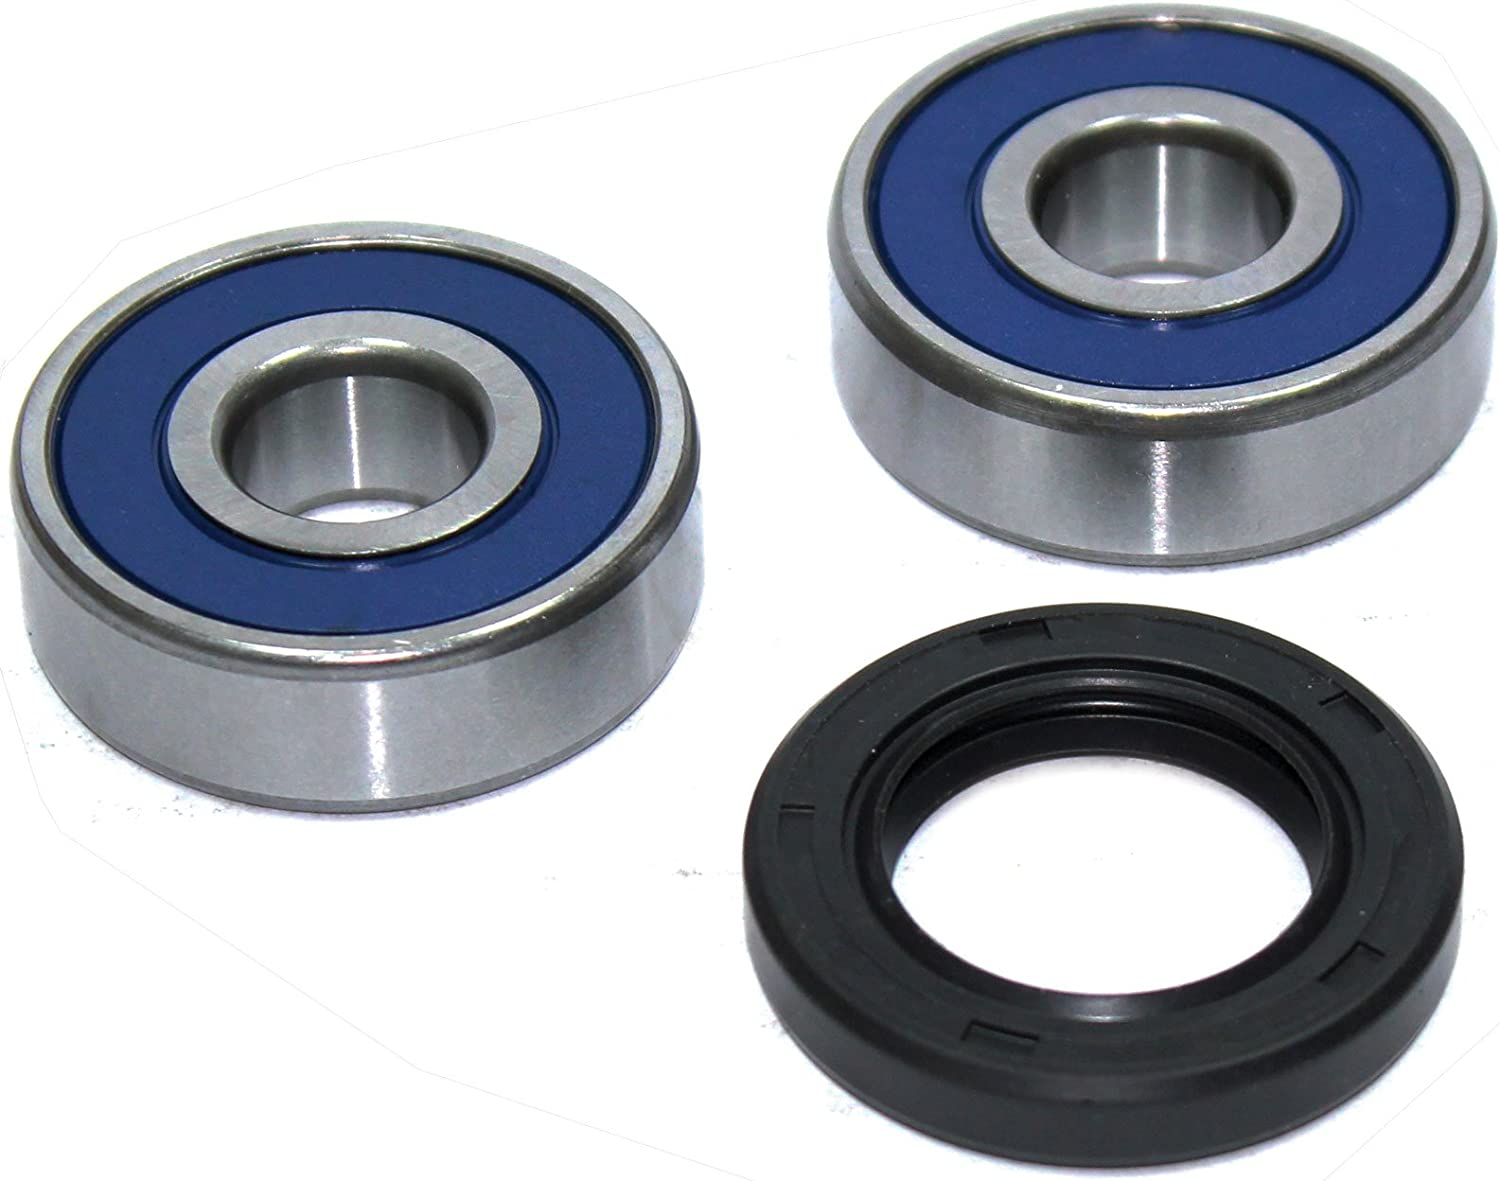 Honda CBR1000RR CBR600RR Rear Wheel Bearing /& Seal Kit